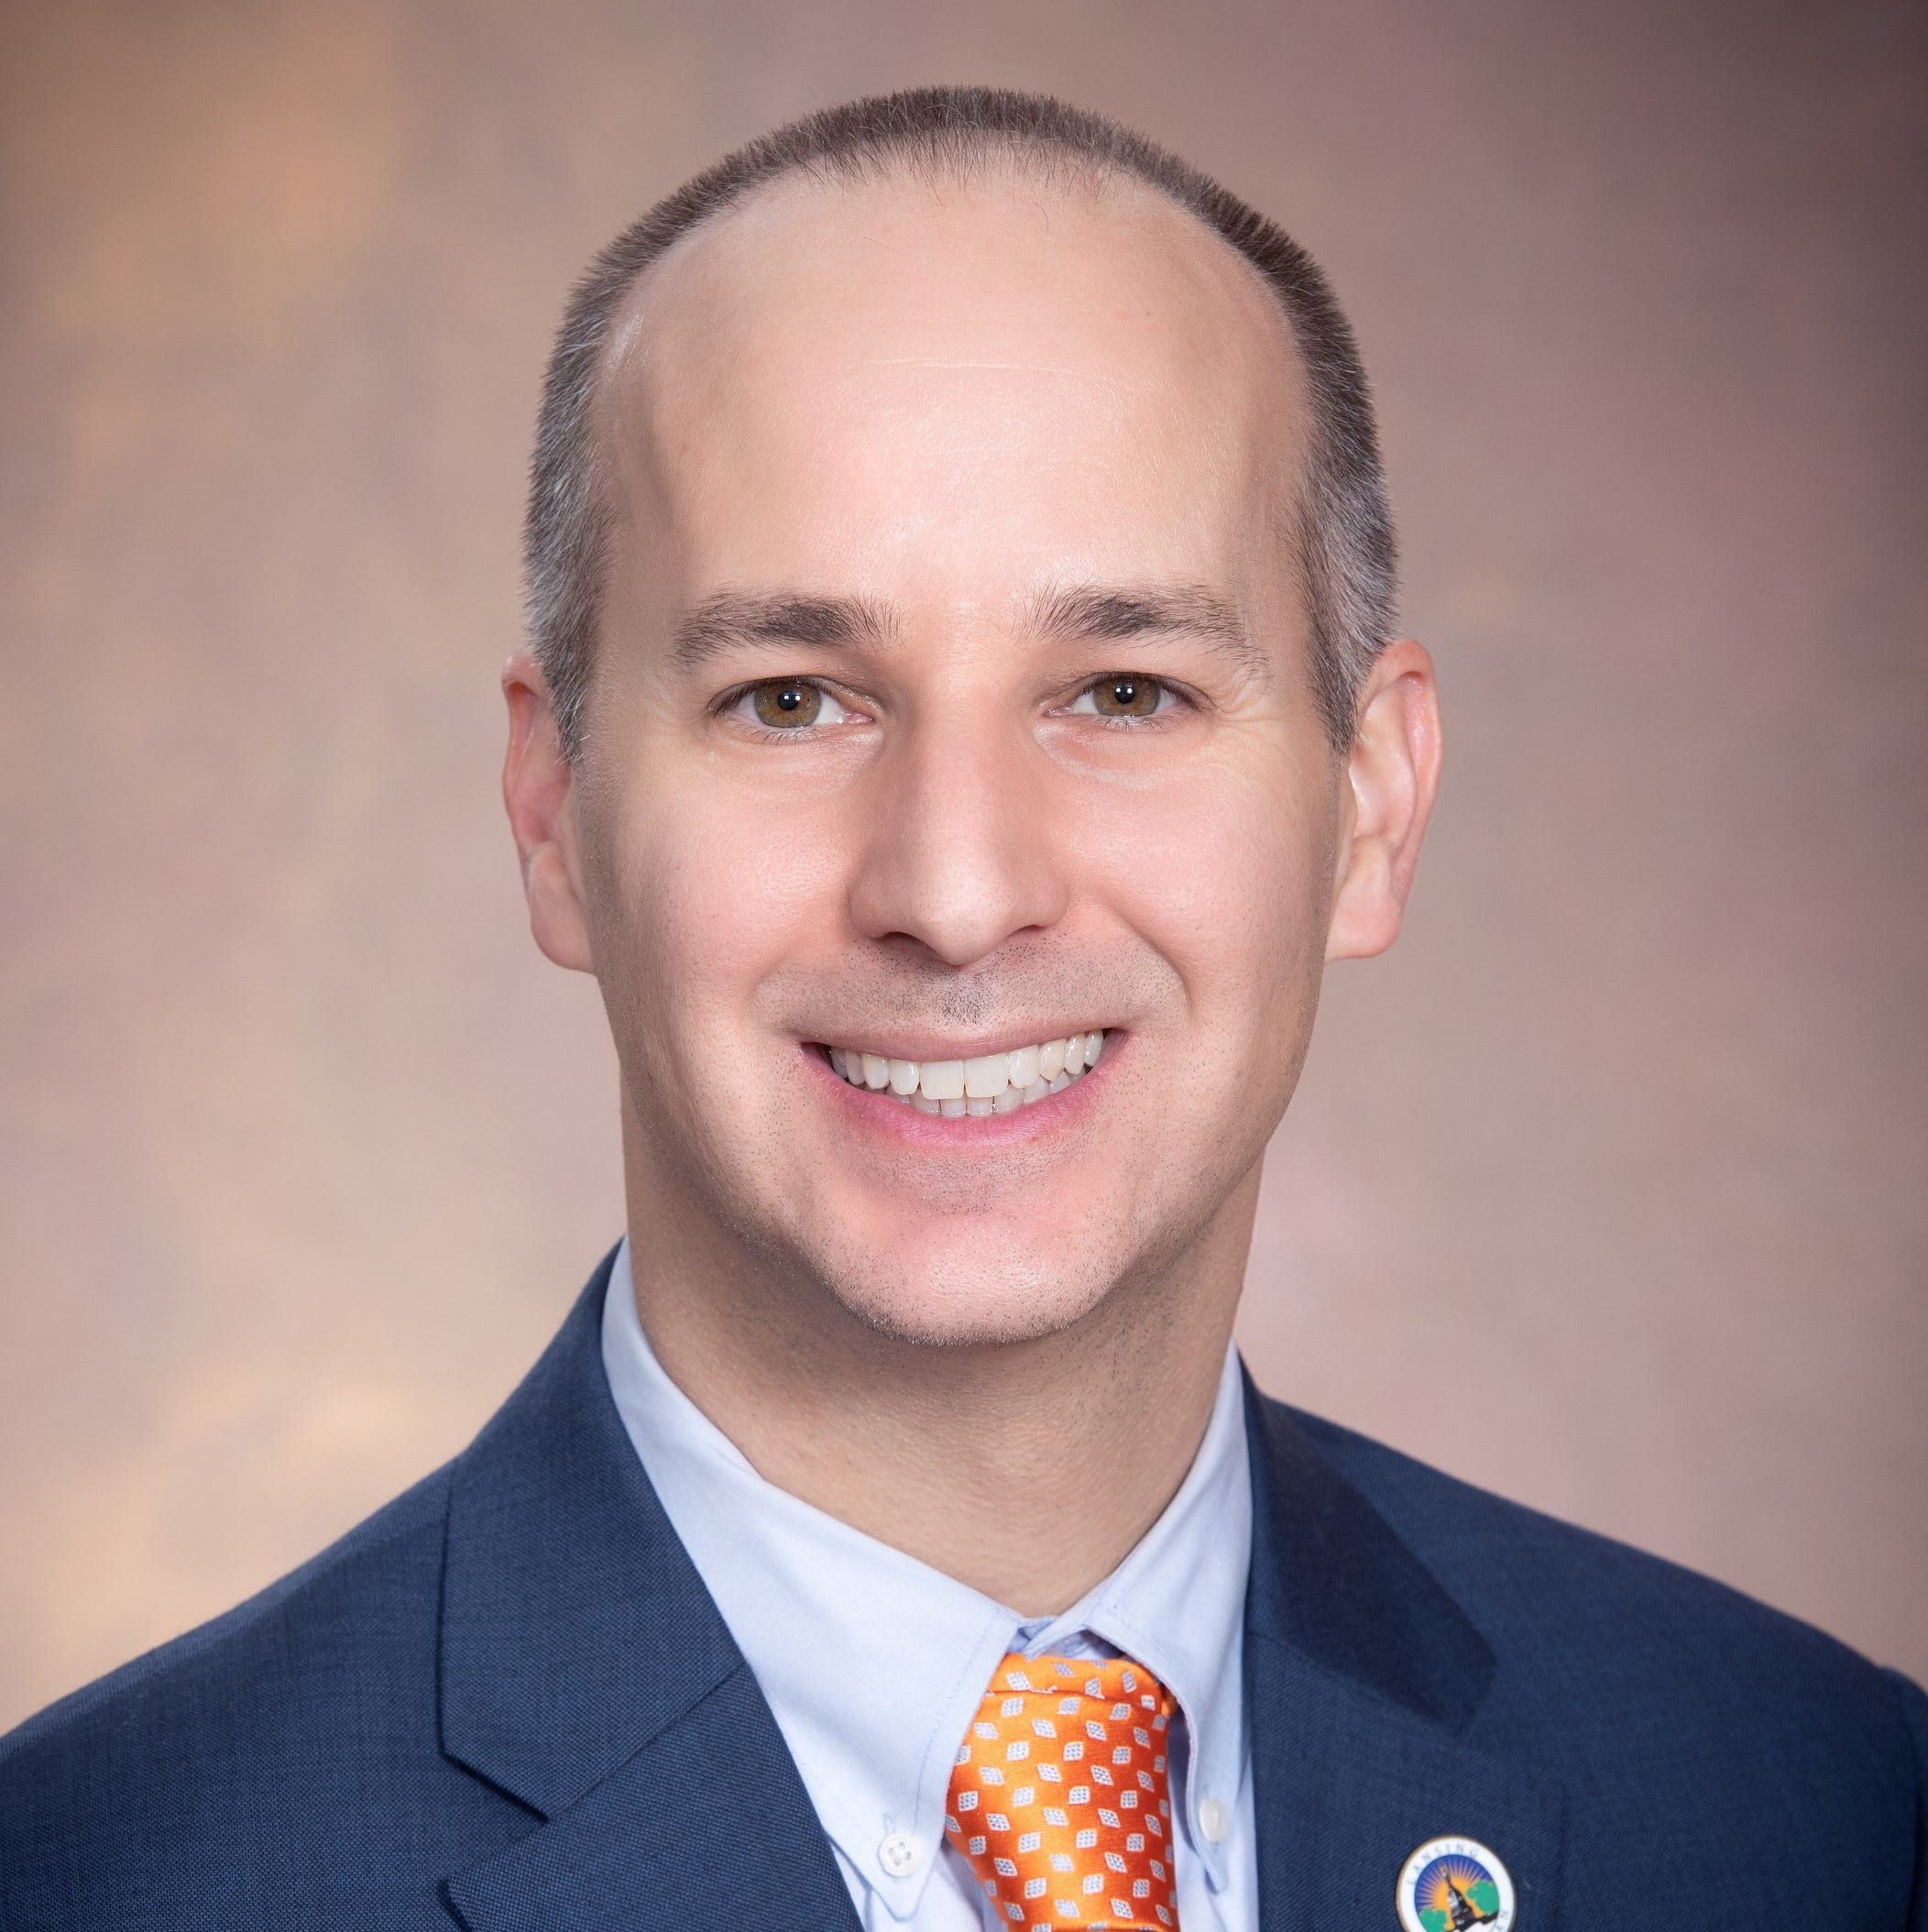 Lansing Mayor Andy Schor issues first veto over neighborhood funding in budget